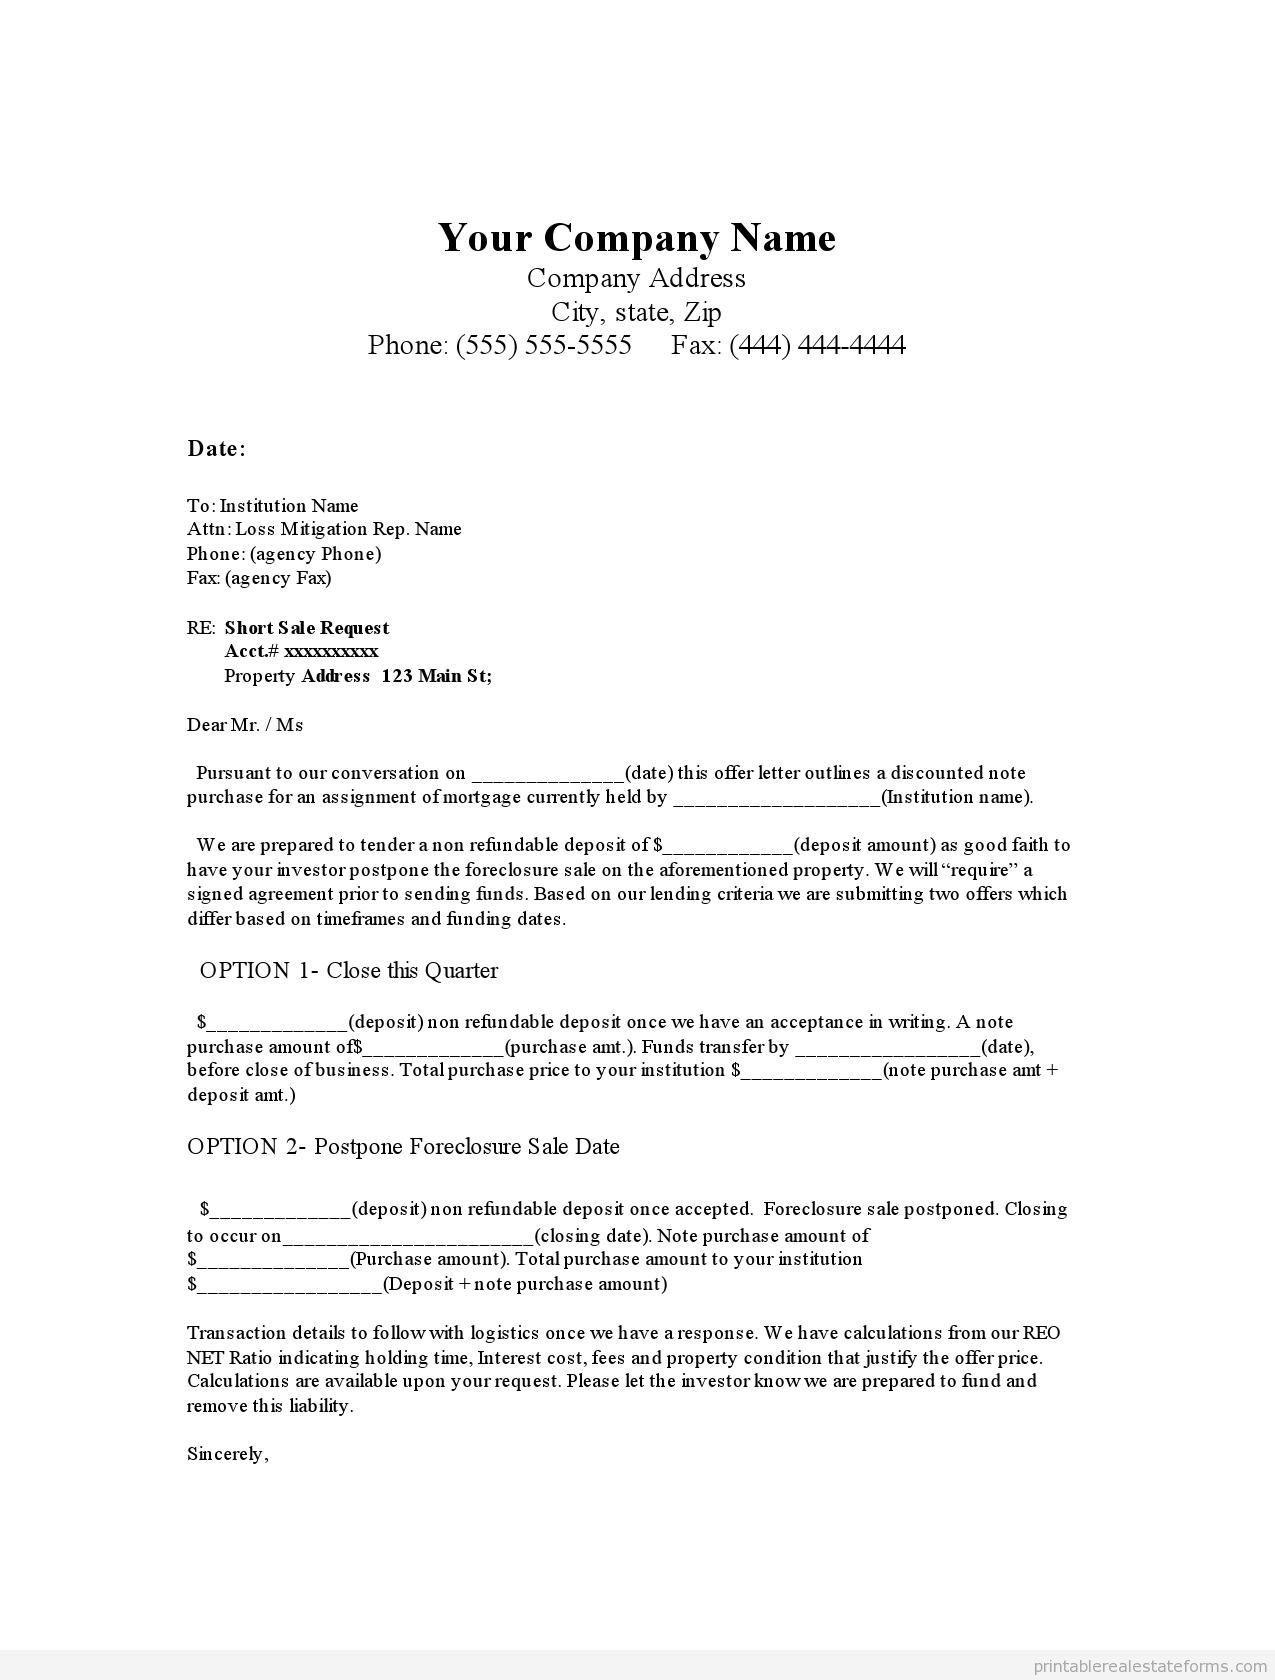 Sample Printable note purchase offer in leiu of short sale Form ...